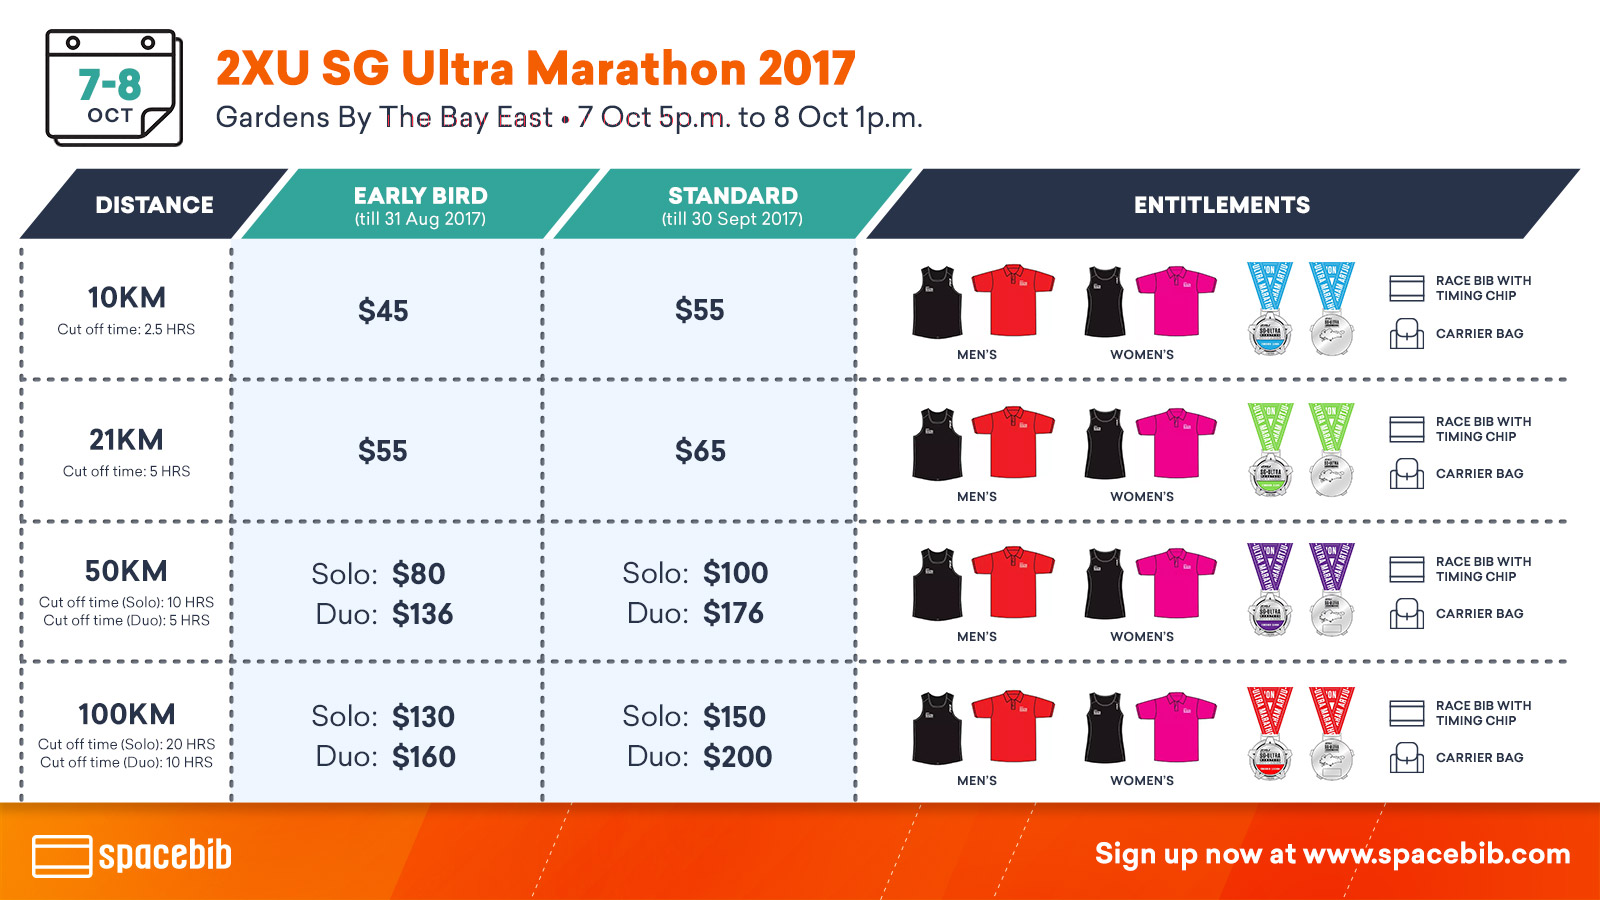 2XU SG Ultra Marathon: Bust Your Biggest Moves Yet!